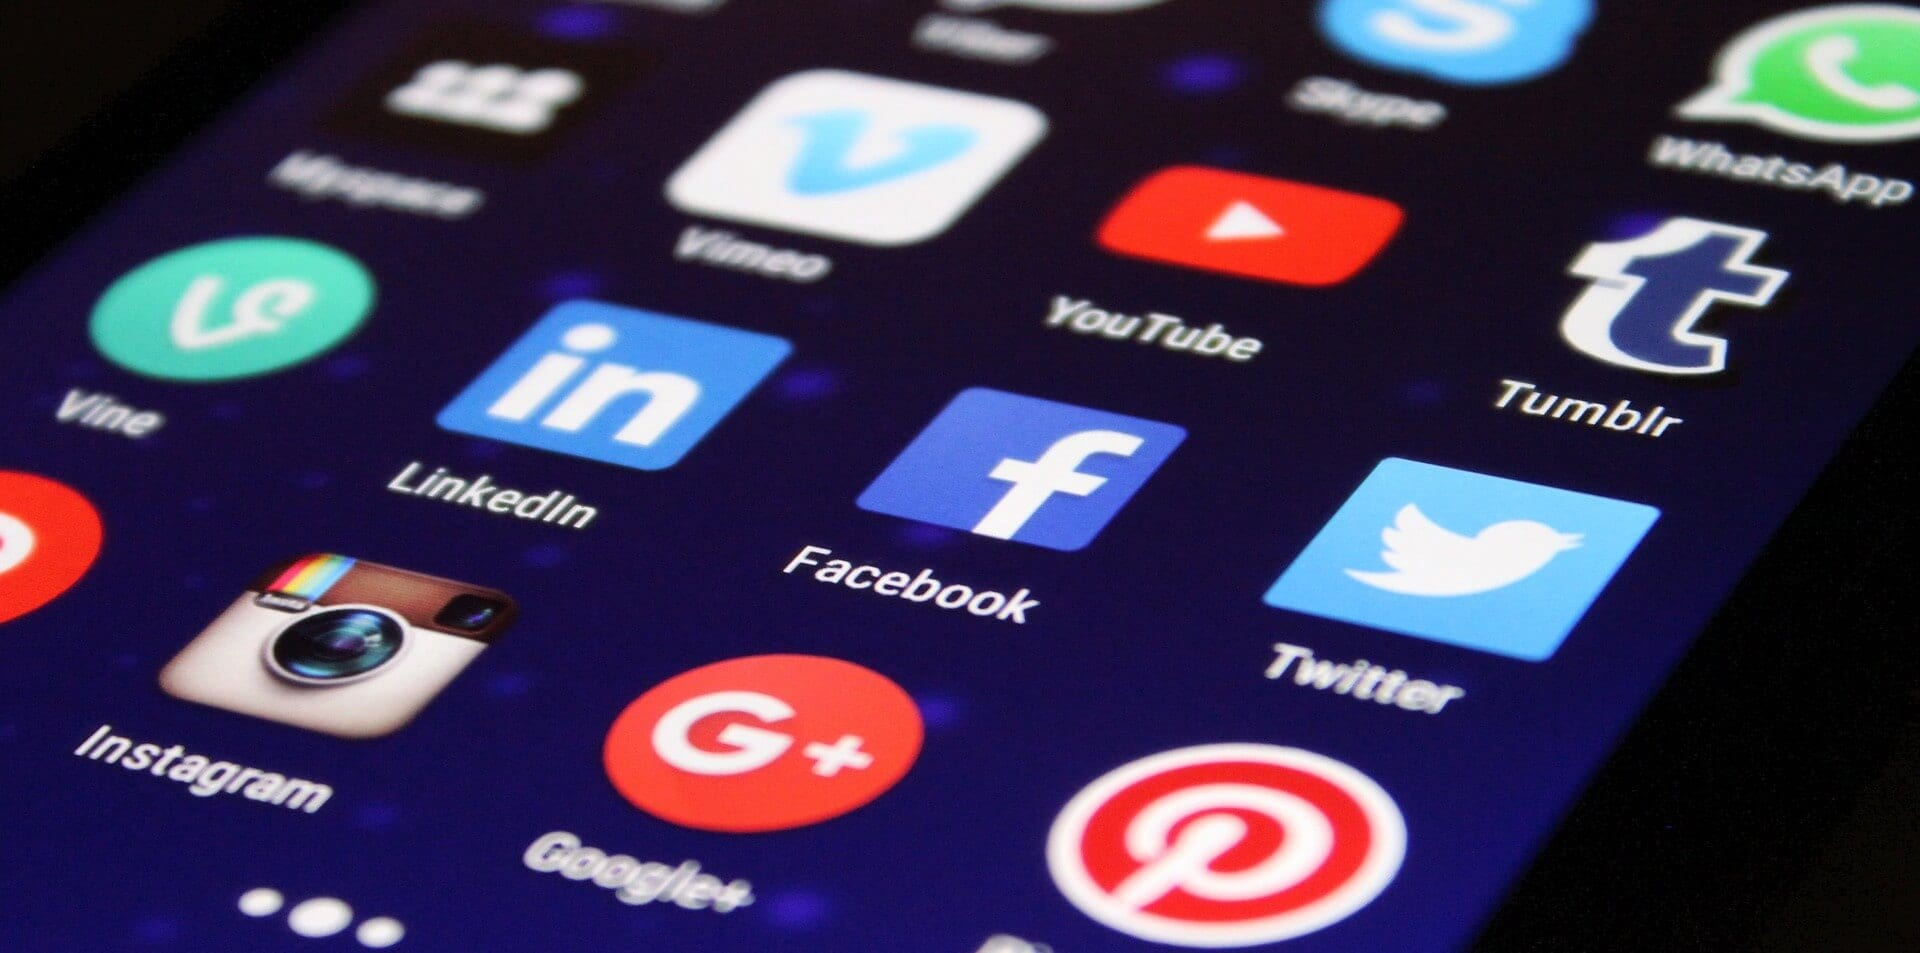 Top Five Ways To Use Social Networks To Promote Your Brand